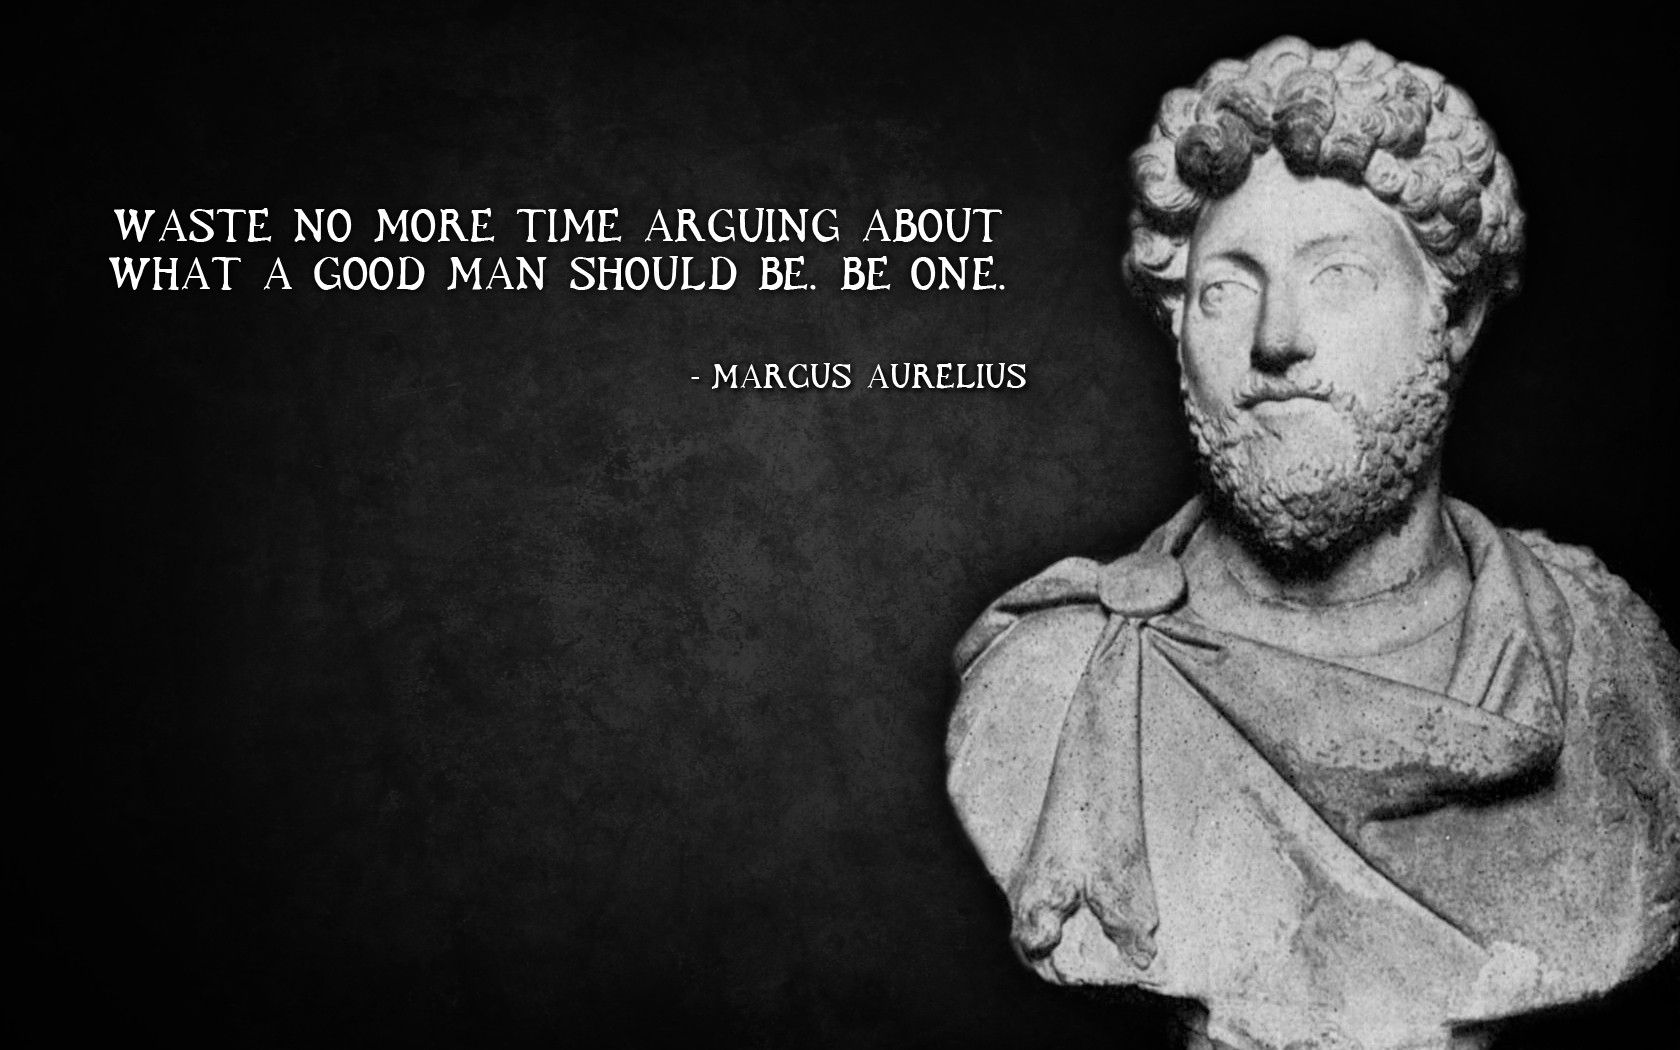 A Simple Stoic Leader Philosophy We Can All Utilizedemarco Banter